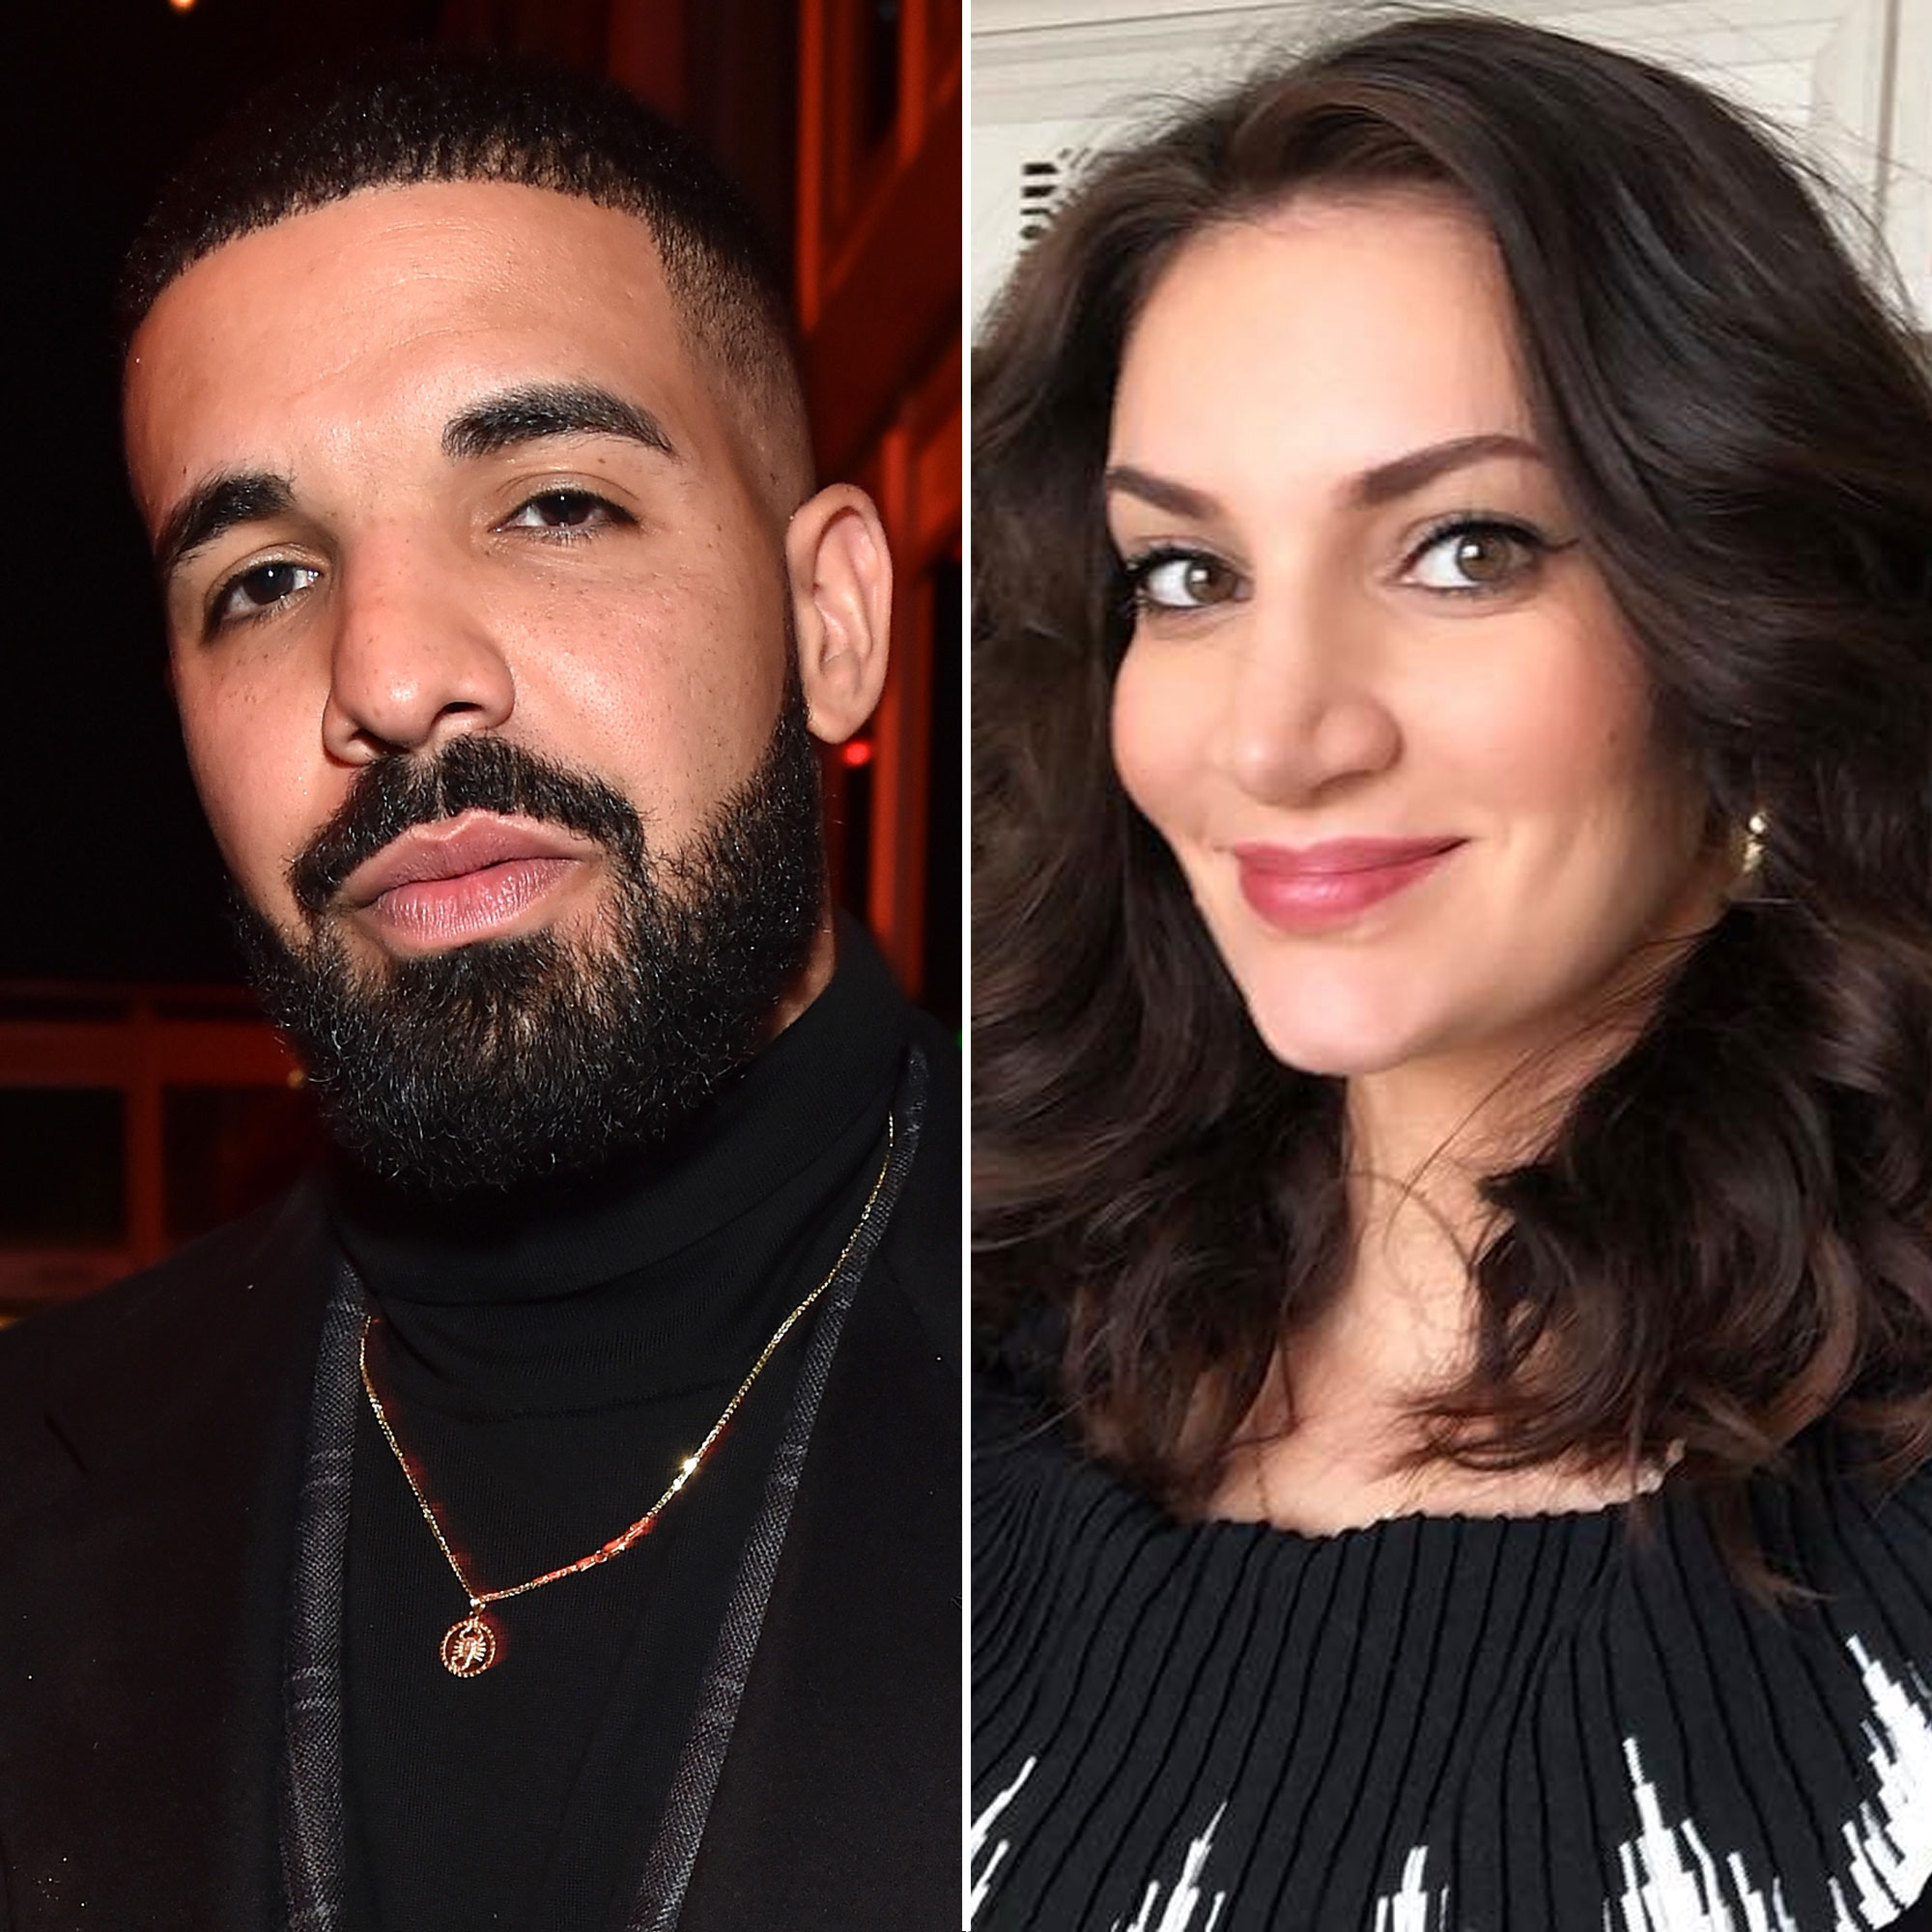 Drake and Sophie Brussaux - The Canadian rapper confirmed he and the adult film actress had an 8-month-old son , Adonis, on his album Scorpion in June 2018, a month after Pusha T leaked the news through a diss track.